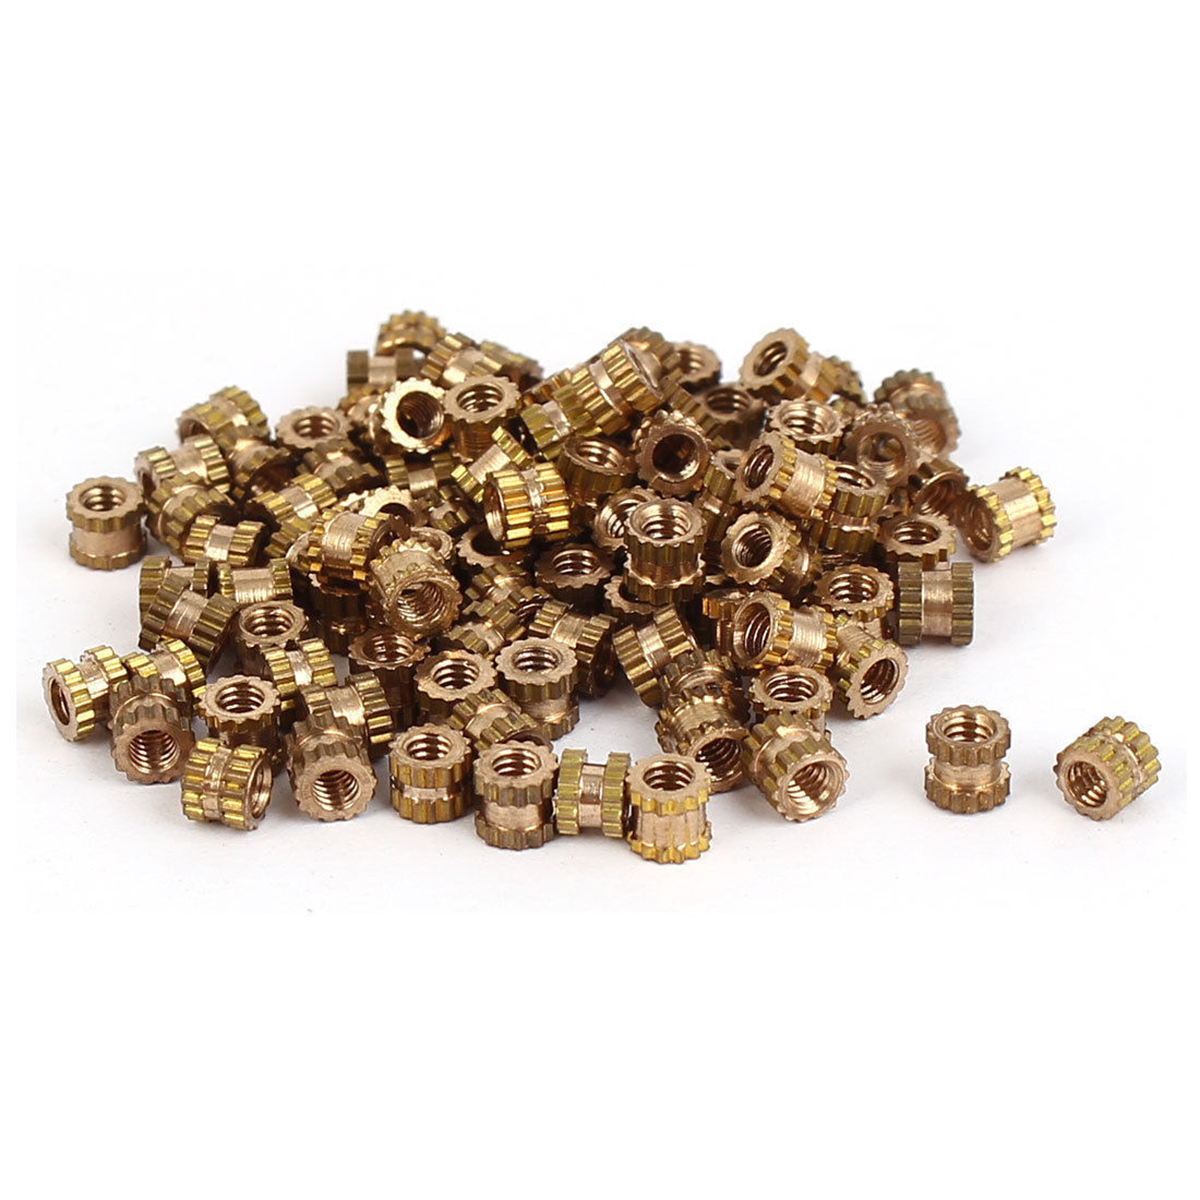 100pcs <font><b>M2x3mm</b></font> Brass Knurled Thread Inserts Nuts Cylinder Round Insert Embedded Nut Mayitr For Hardware Accessories image